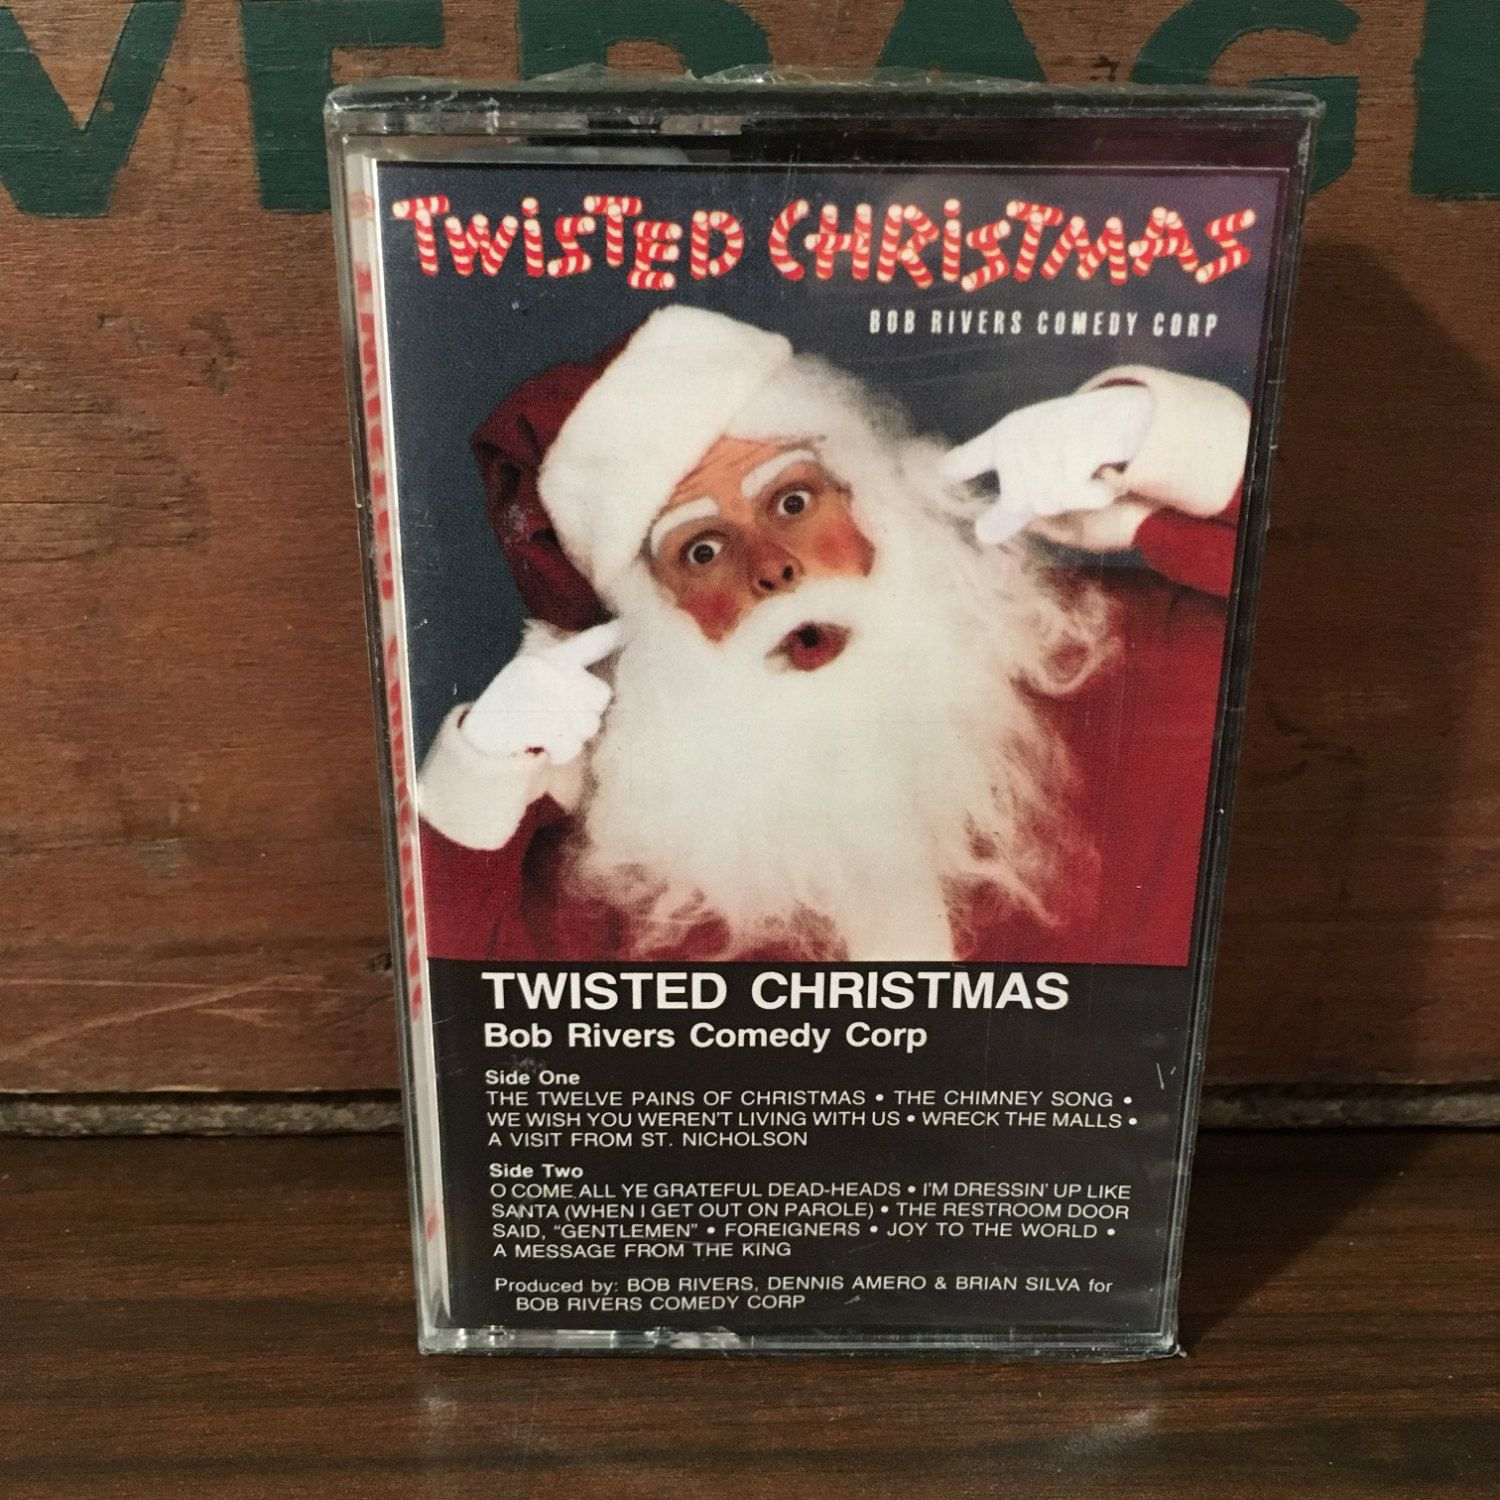 Bob Rivers Twisted Christmas.Bob Rivers Twisted Christmas Vintage Cassette Tape Sealed